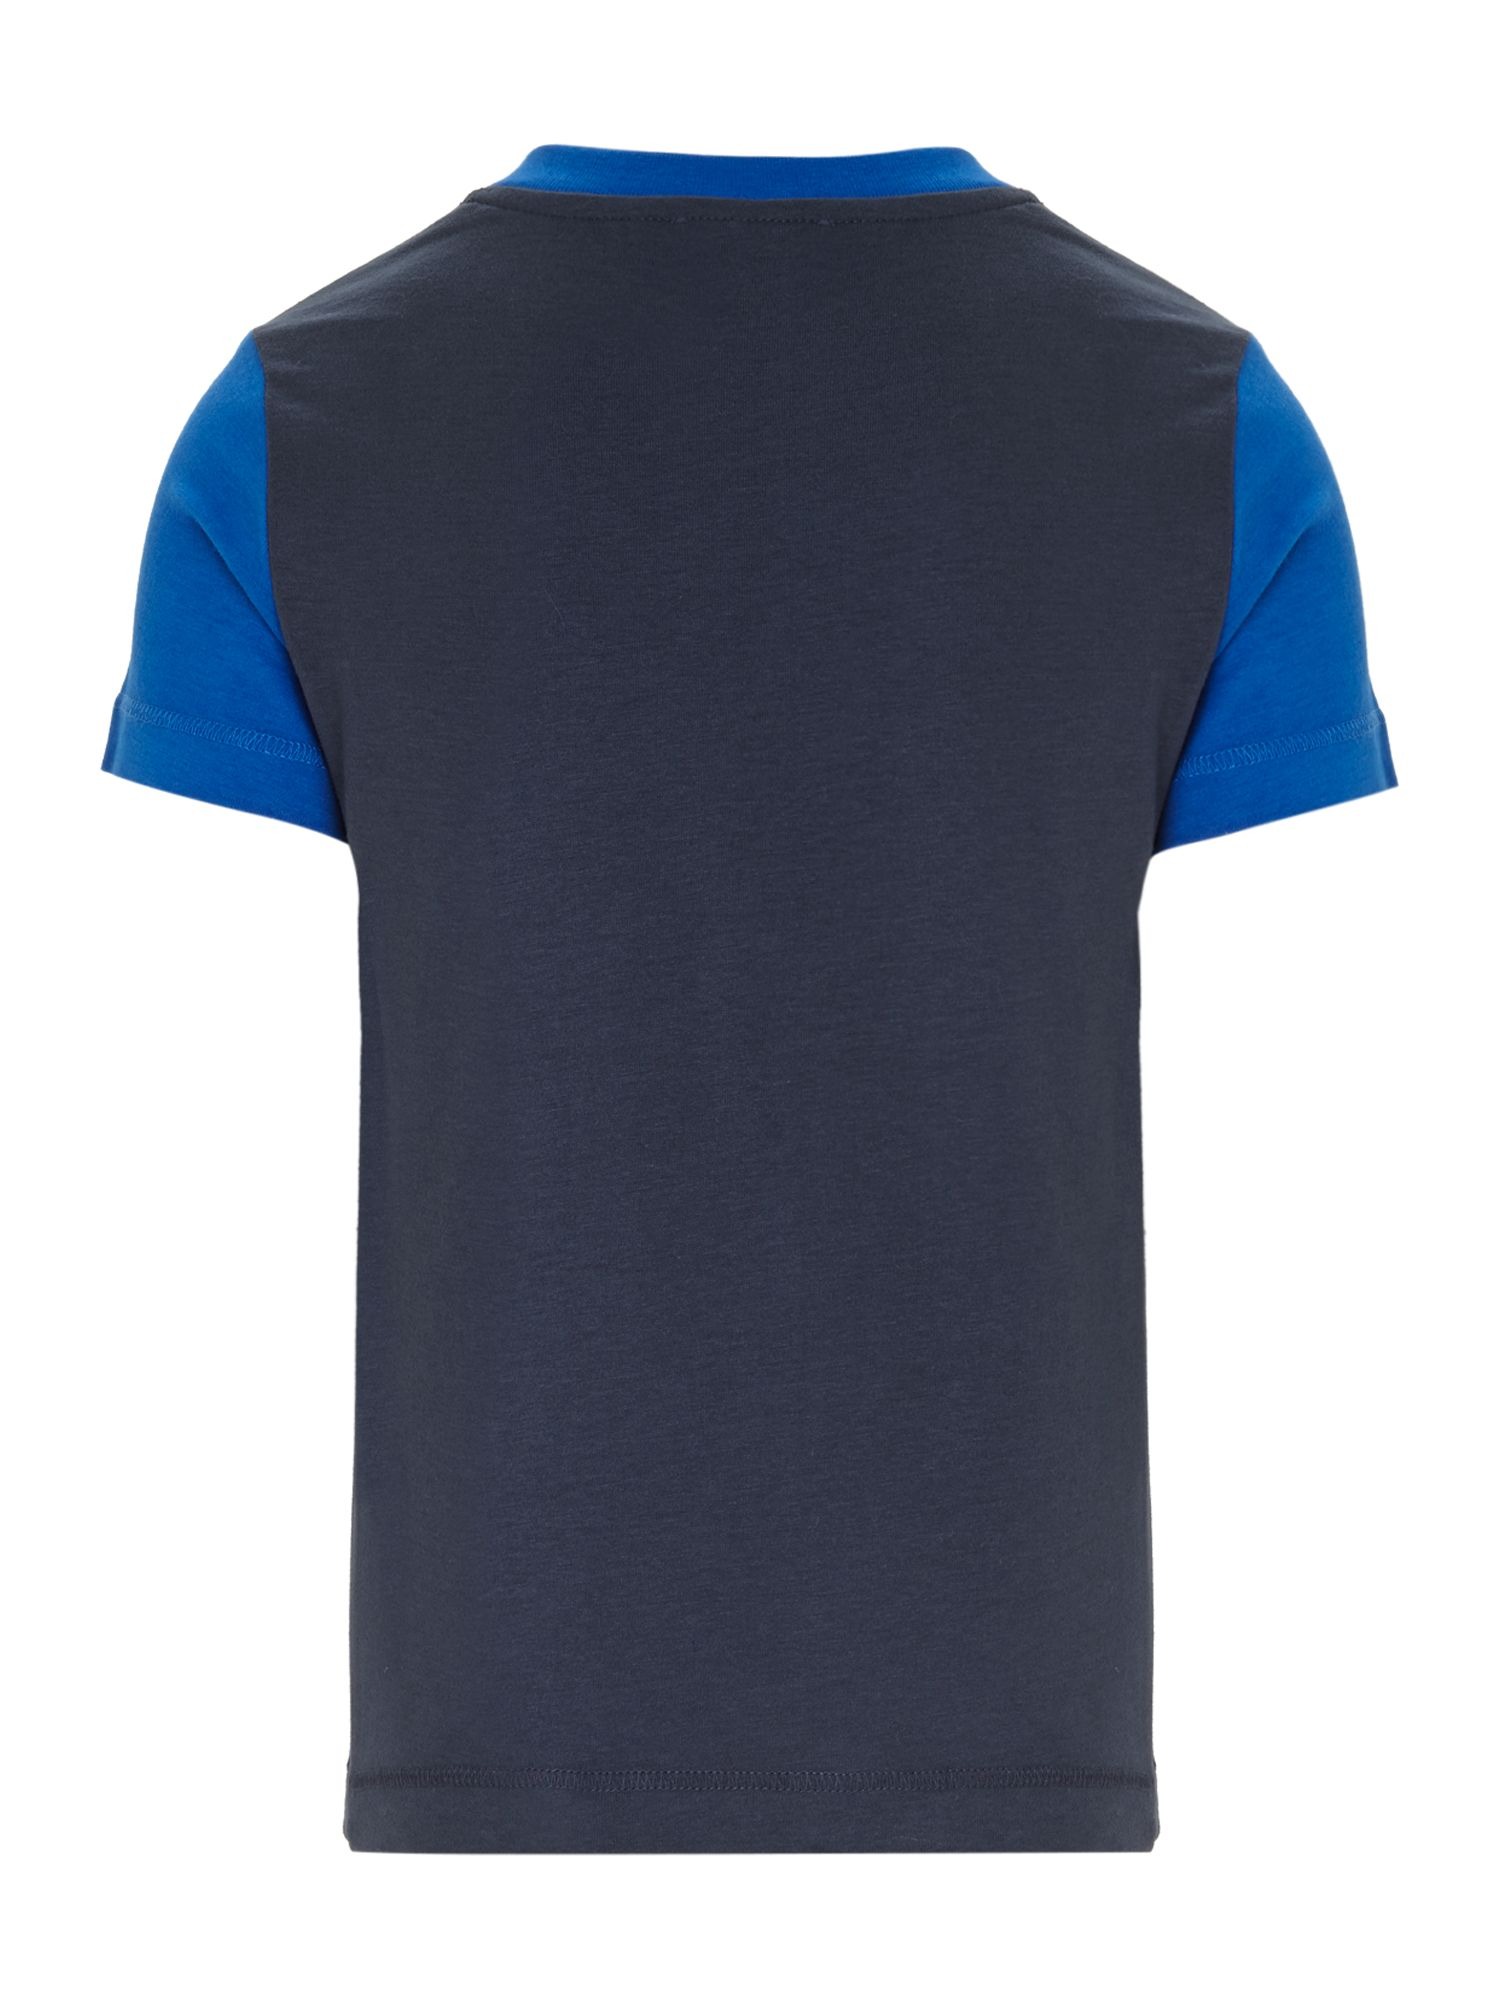 Boys jersey short sleeve t-shirt